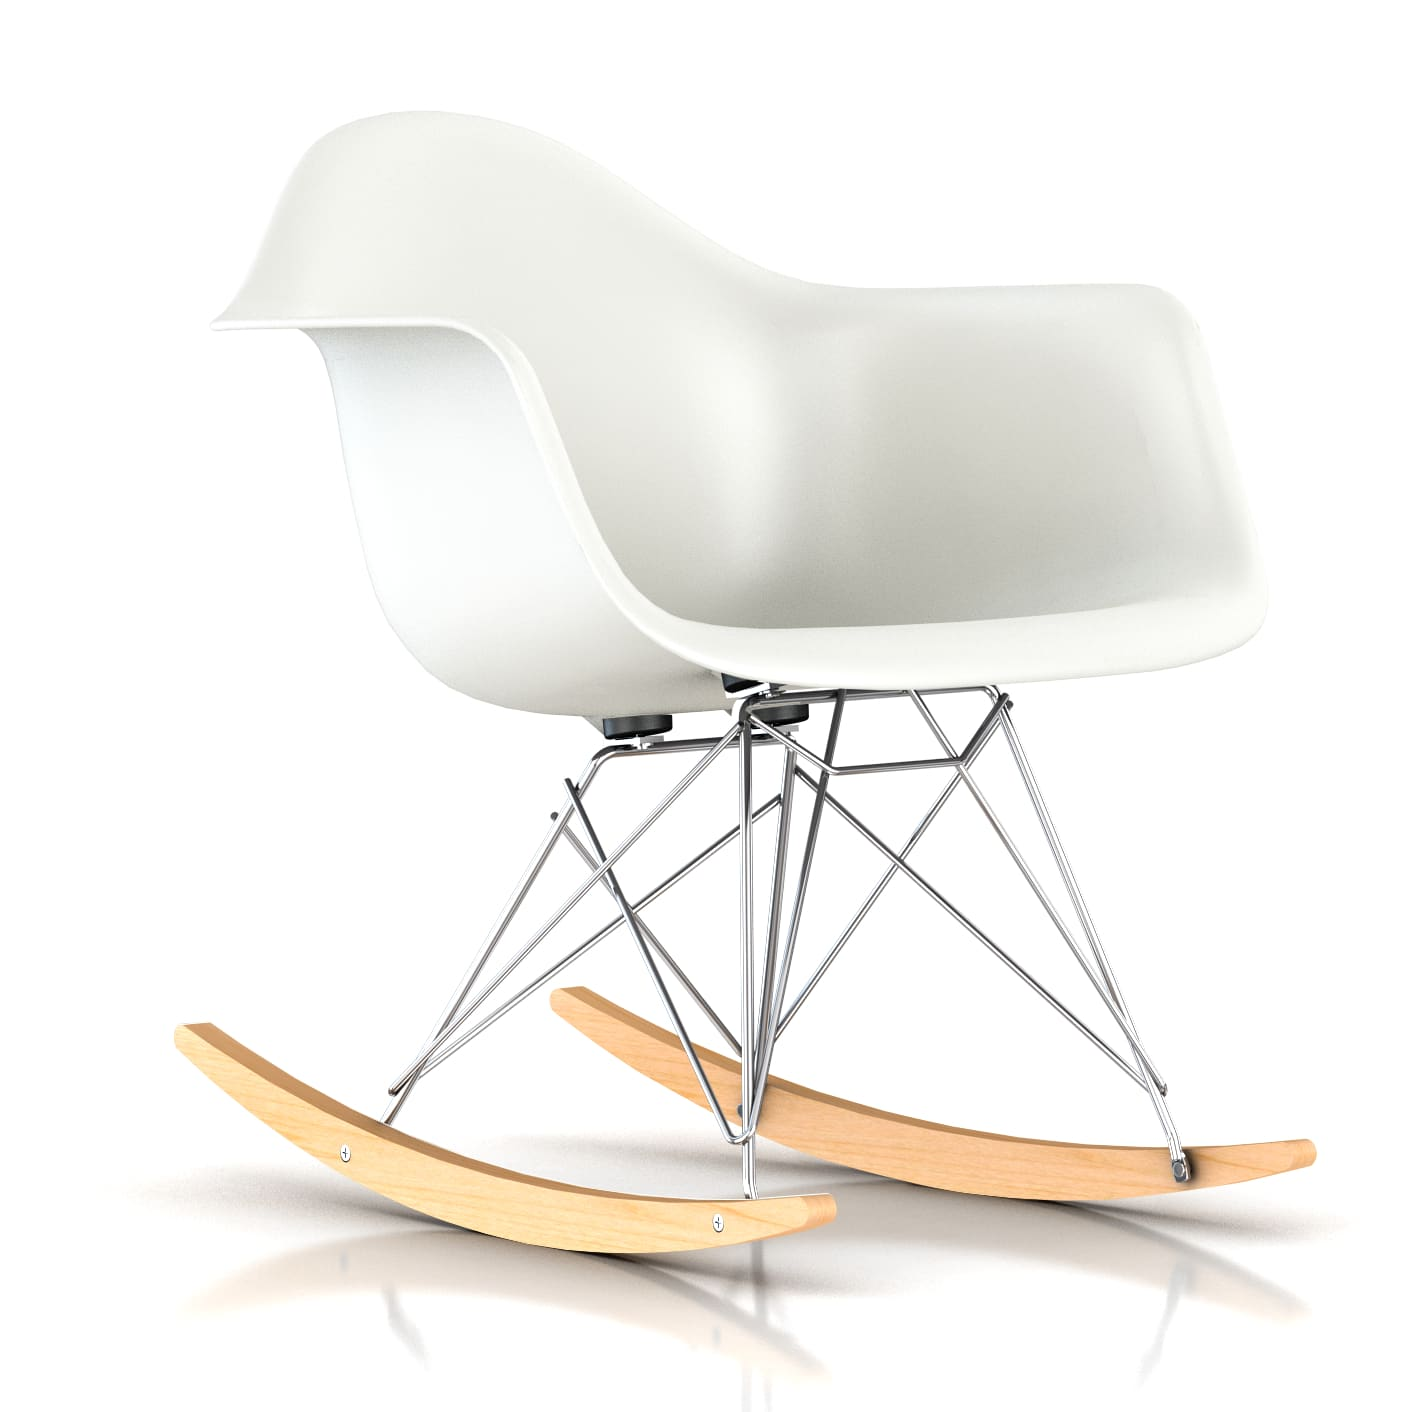 Eames Molded Plastic Chair Knockoff Herman Miller Eames Molded Rocking Chairs